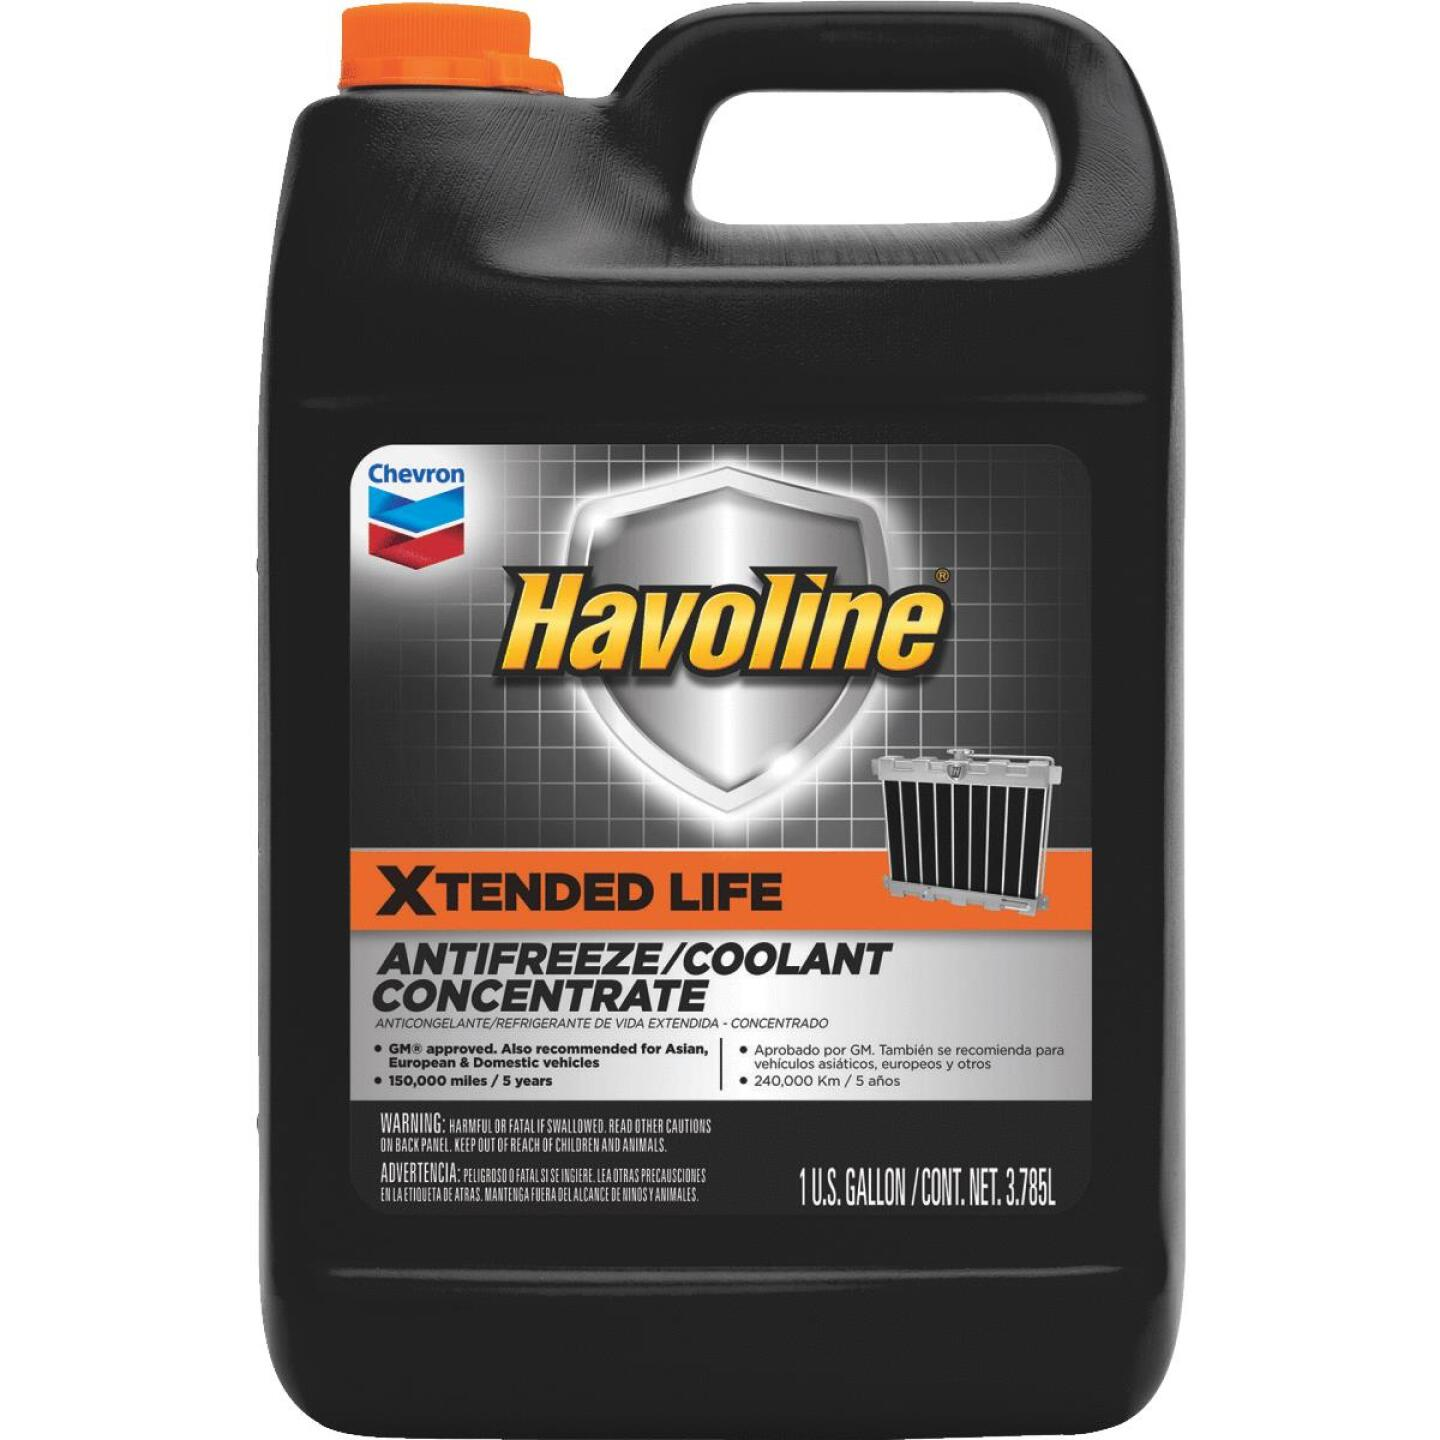 Havoline Xtended Life Gallon Concentrate -34 F to 228 F Automotive Antifreeze Image 1